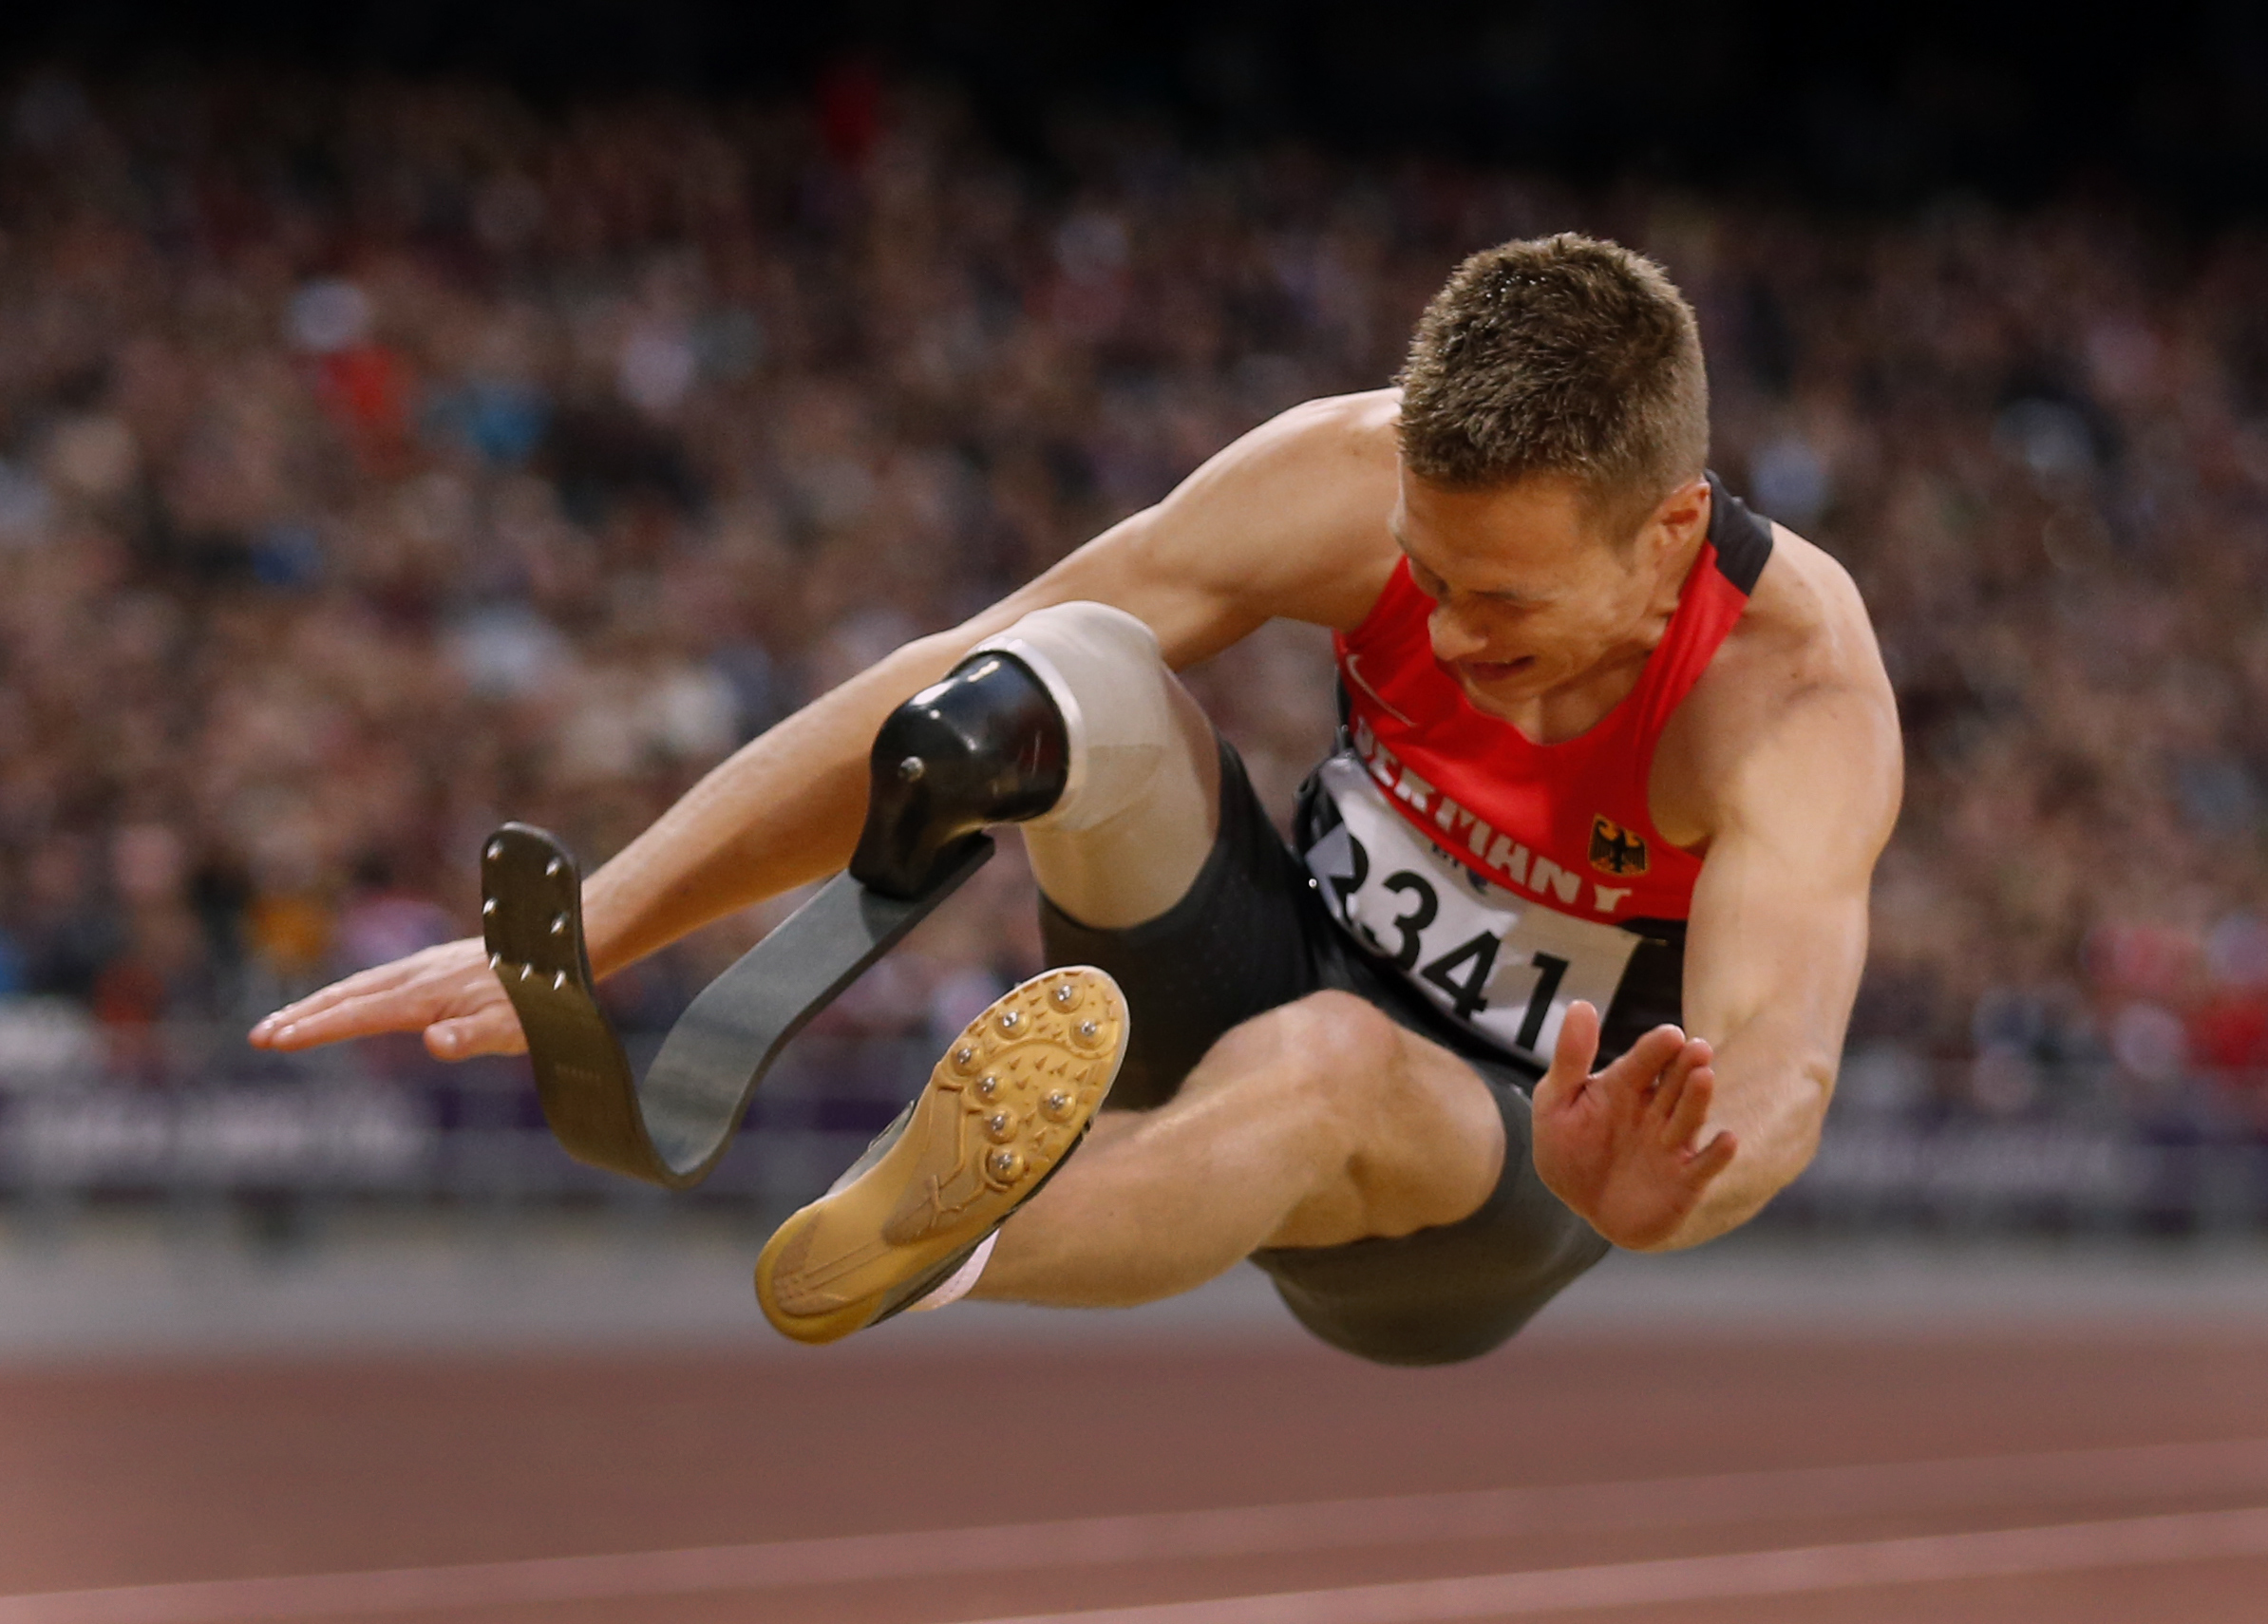 FILE - In this Aug. 31, 2012 file photo Germany's Markus Rehm makes a world record jump of 7.14 meters in the men's long jump F42/44 final during the athletics competition at the 2012 Paralympics in London. Rehm hopes a scientific study will clear him to